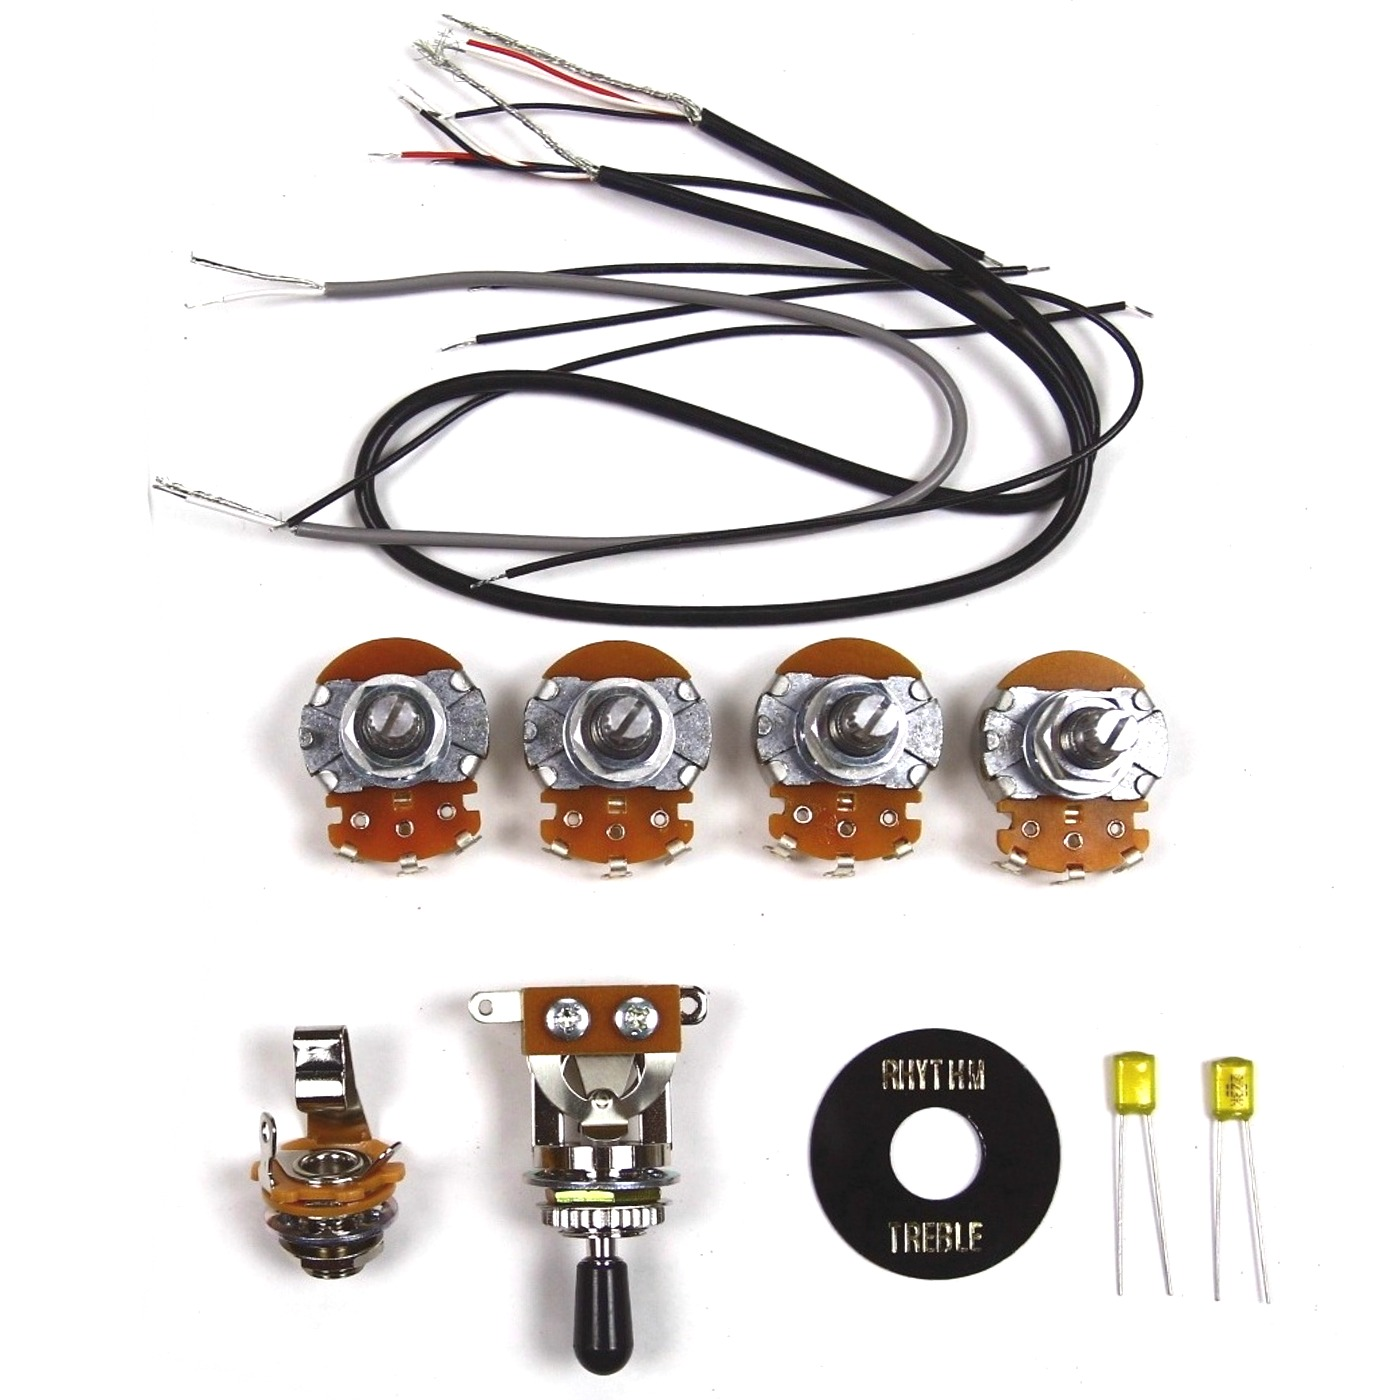 Wiring Kit For Lp Type Guitars With Diagram Black Guitar Pickup Kits Quick View